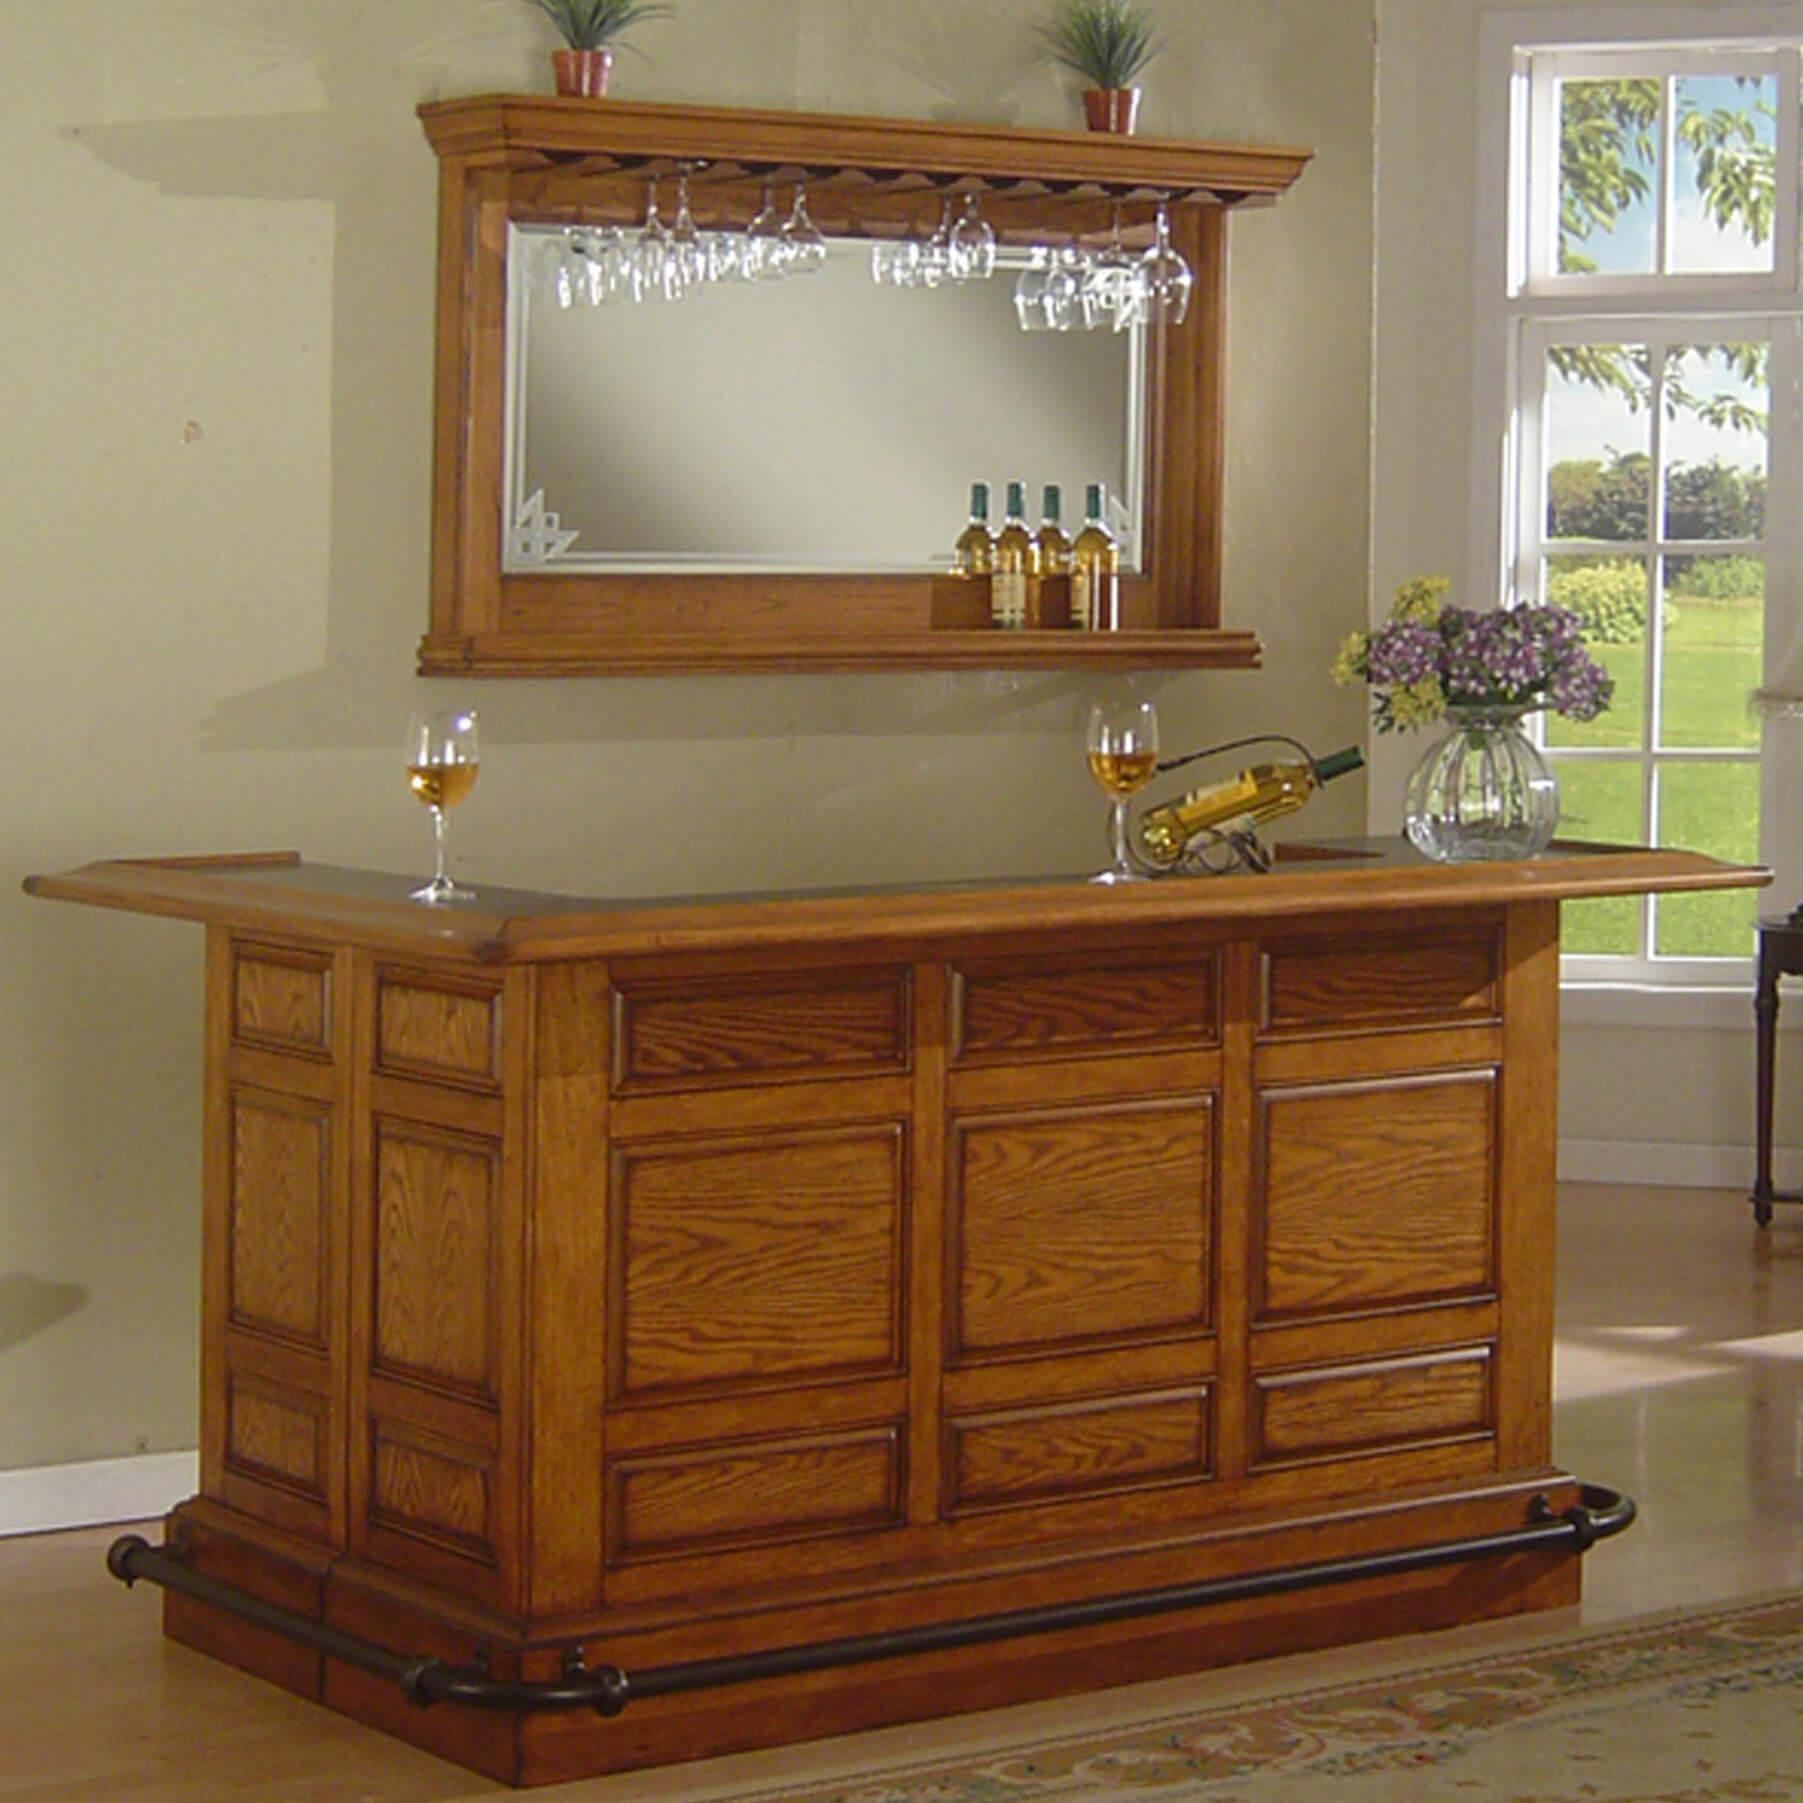 Captivating Solid Wood Home Bar With Wrap Around Counter.